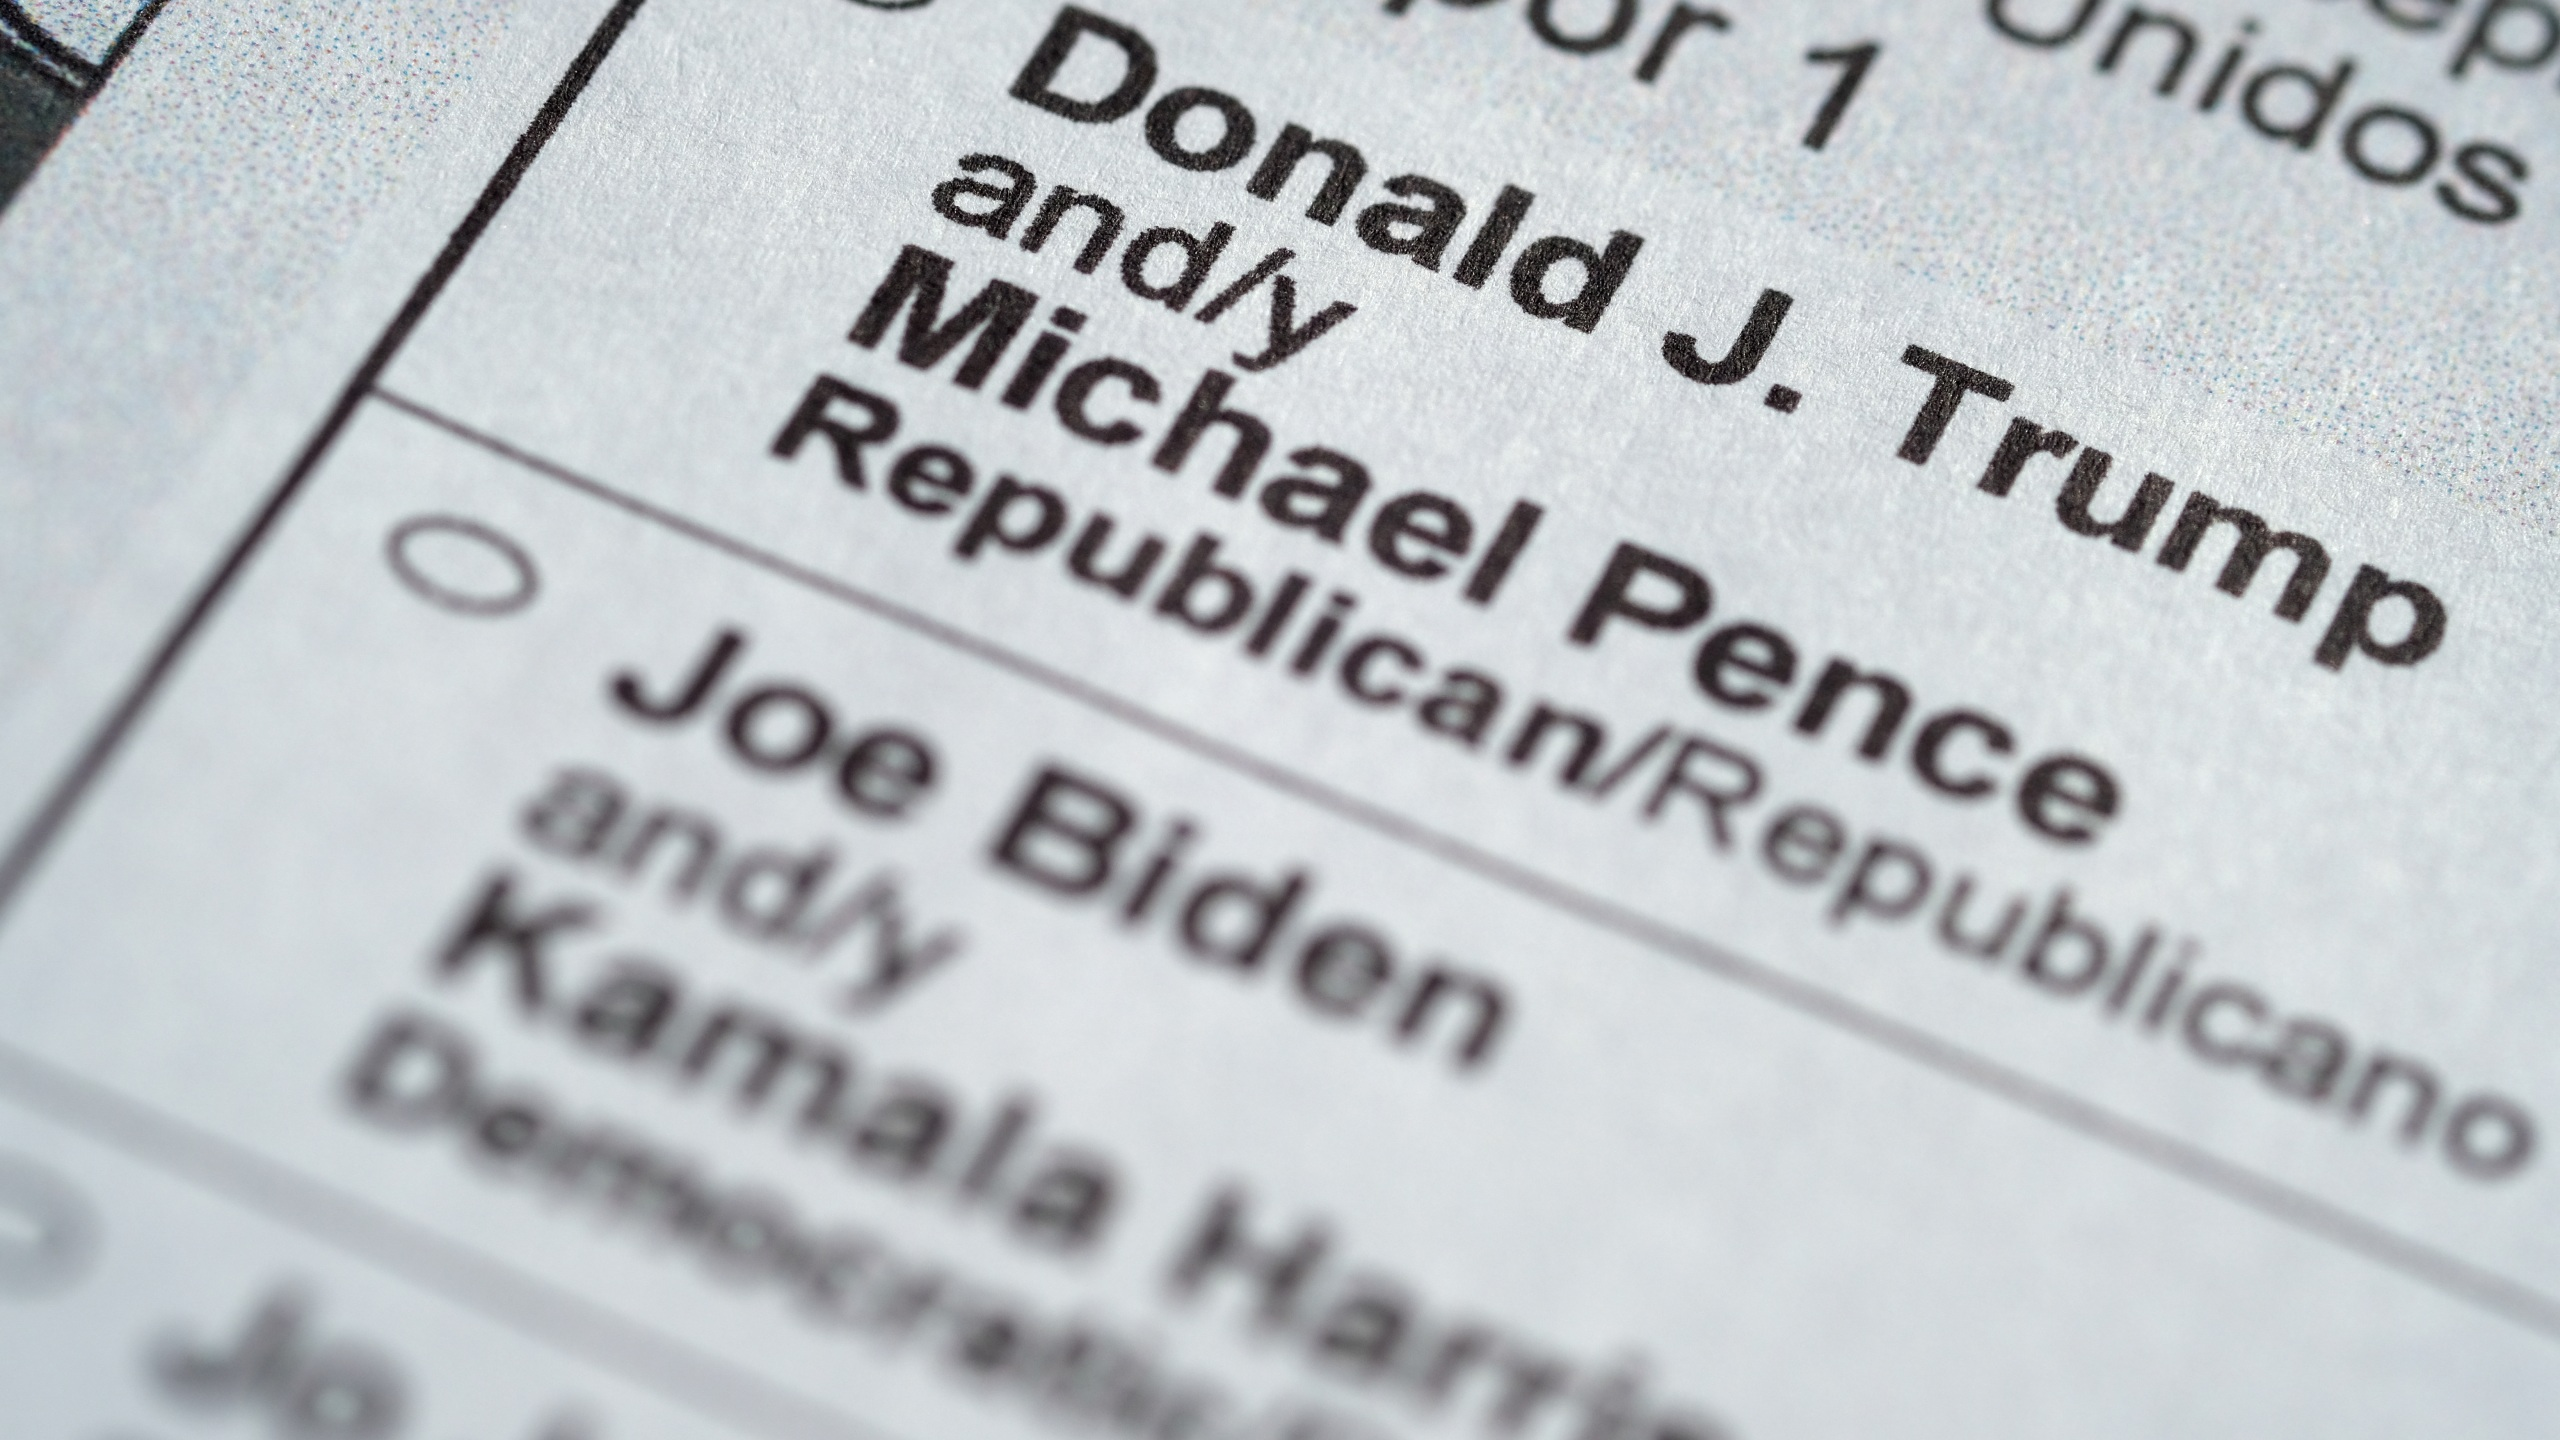 President Donald Trump and Democratic candidate Joe Biden appear on a ballot.